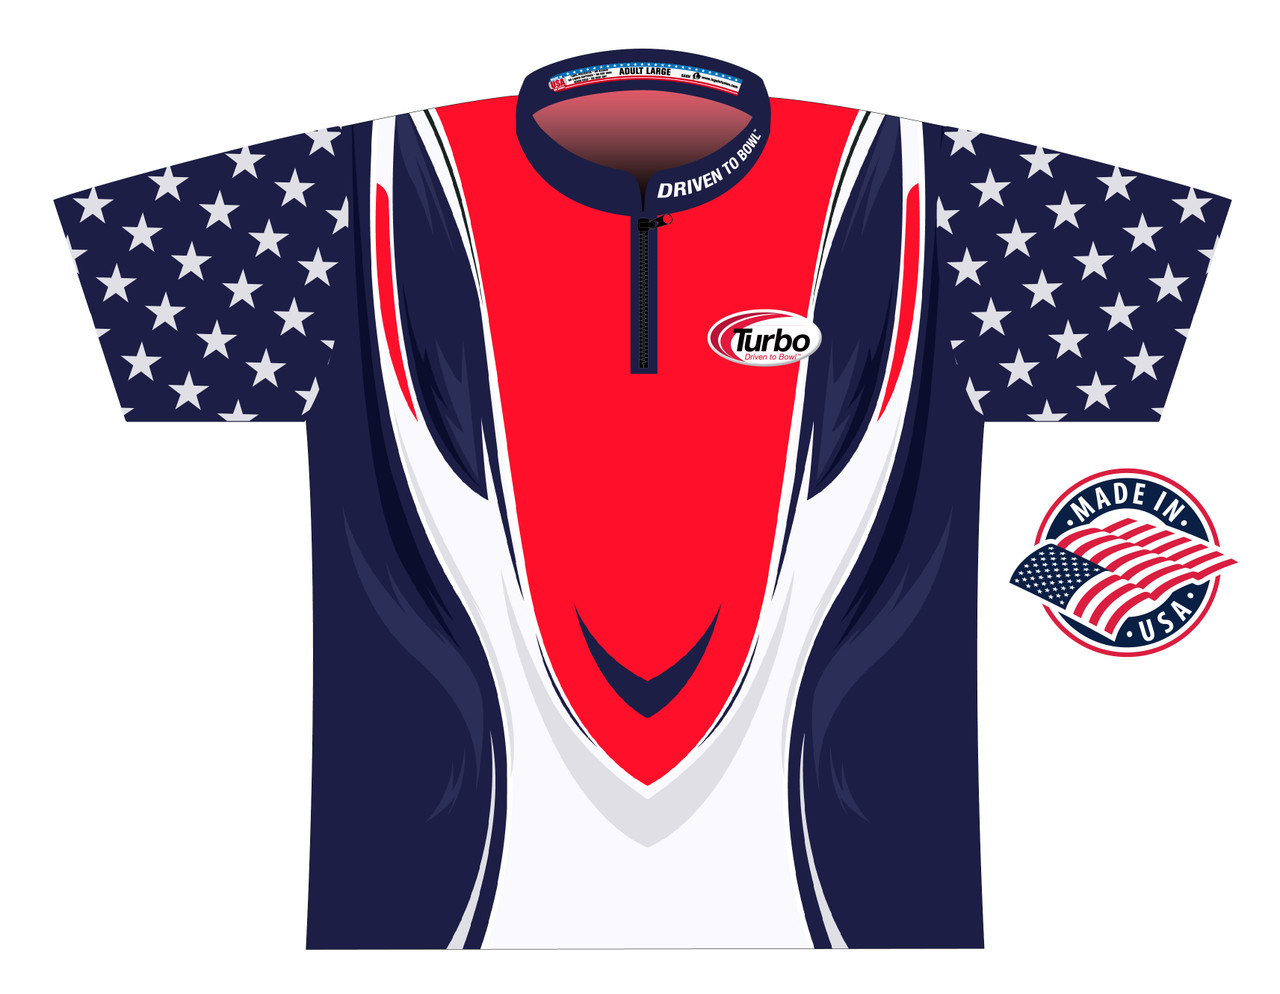 Turbo DS Jersey Style 0988-TB